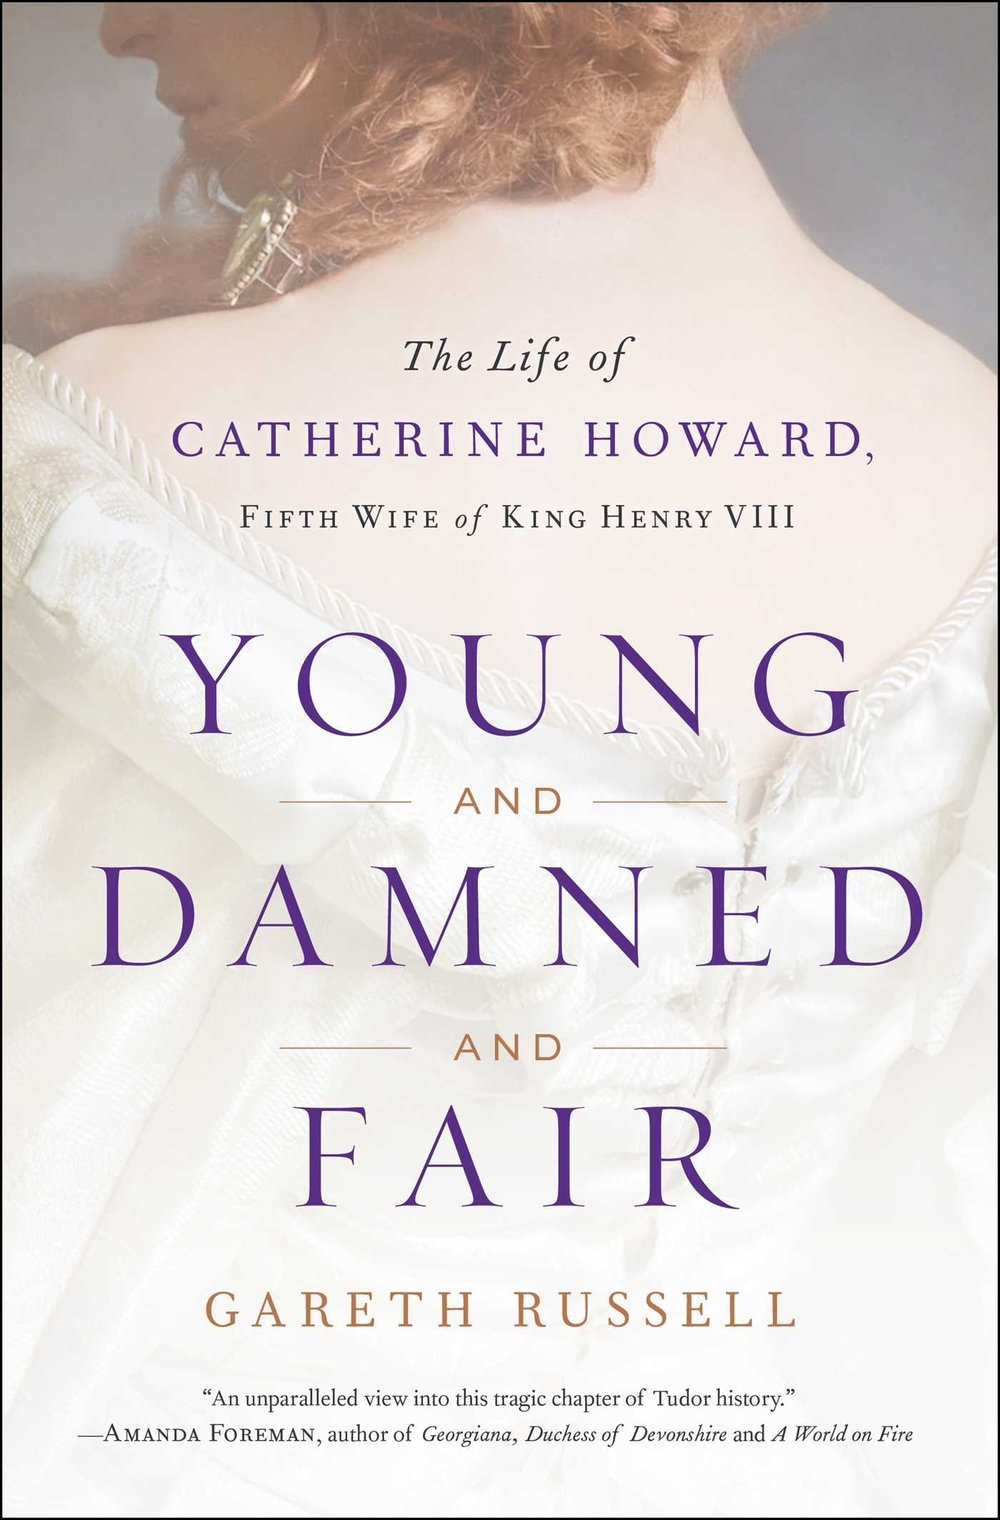 Young and Damned and Fair  by Gareth Russell  Simon & Schuster ---- April 4, 2017